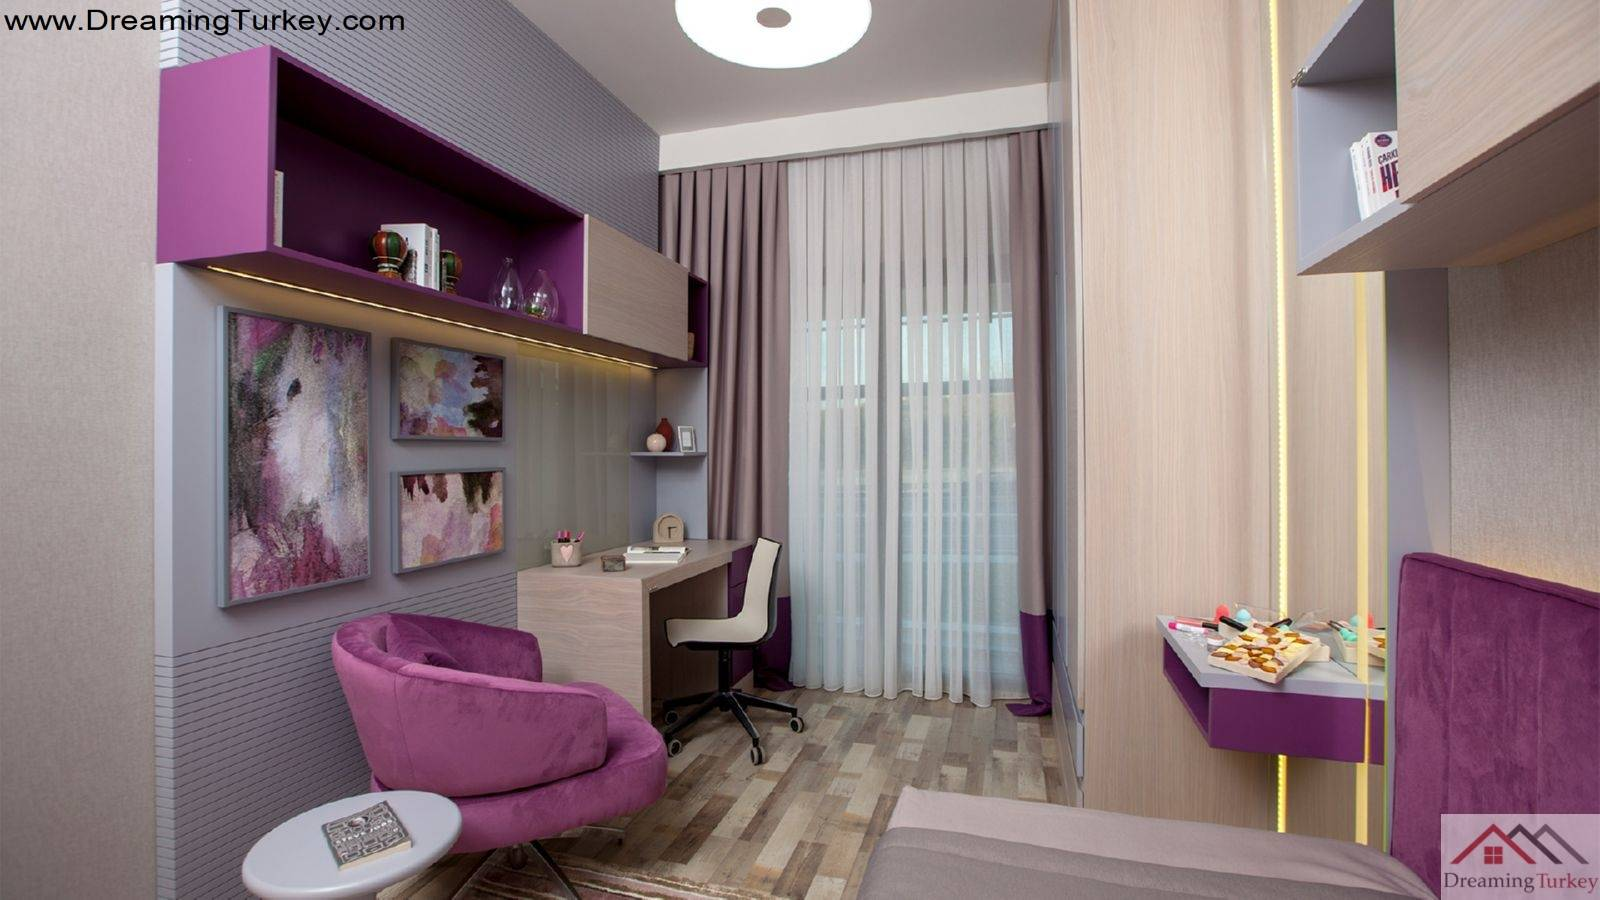 2-Bedroom Apartment Next to the Metrobus in Istanbul